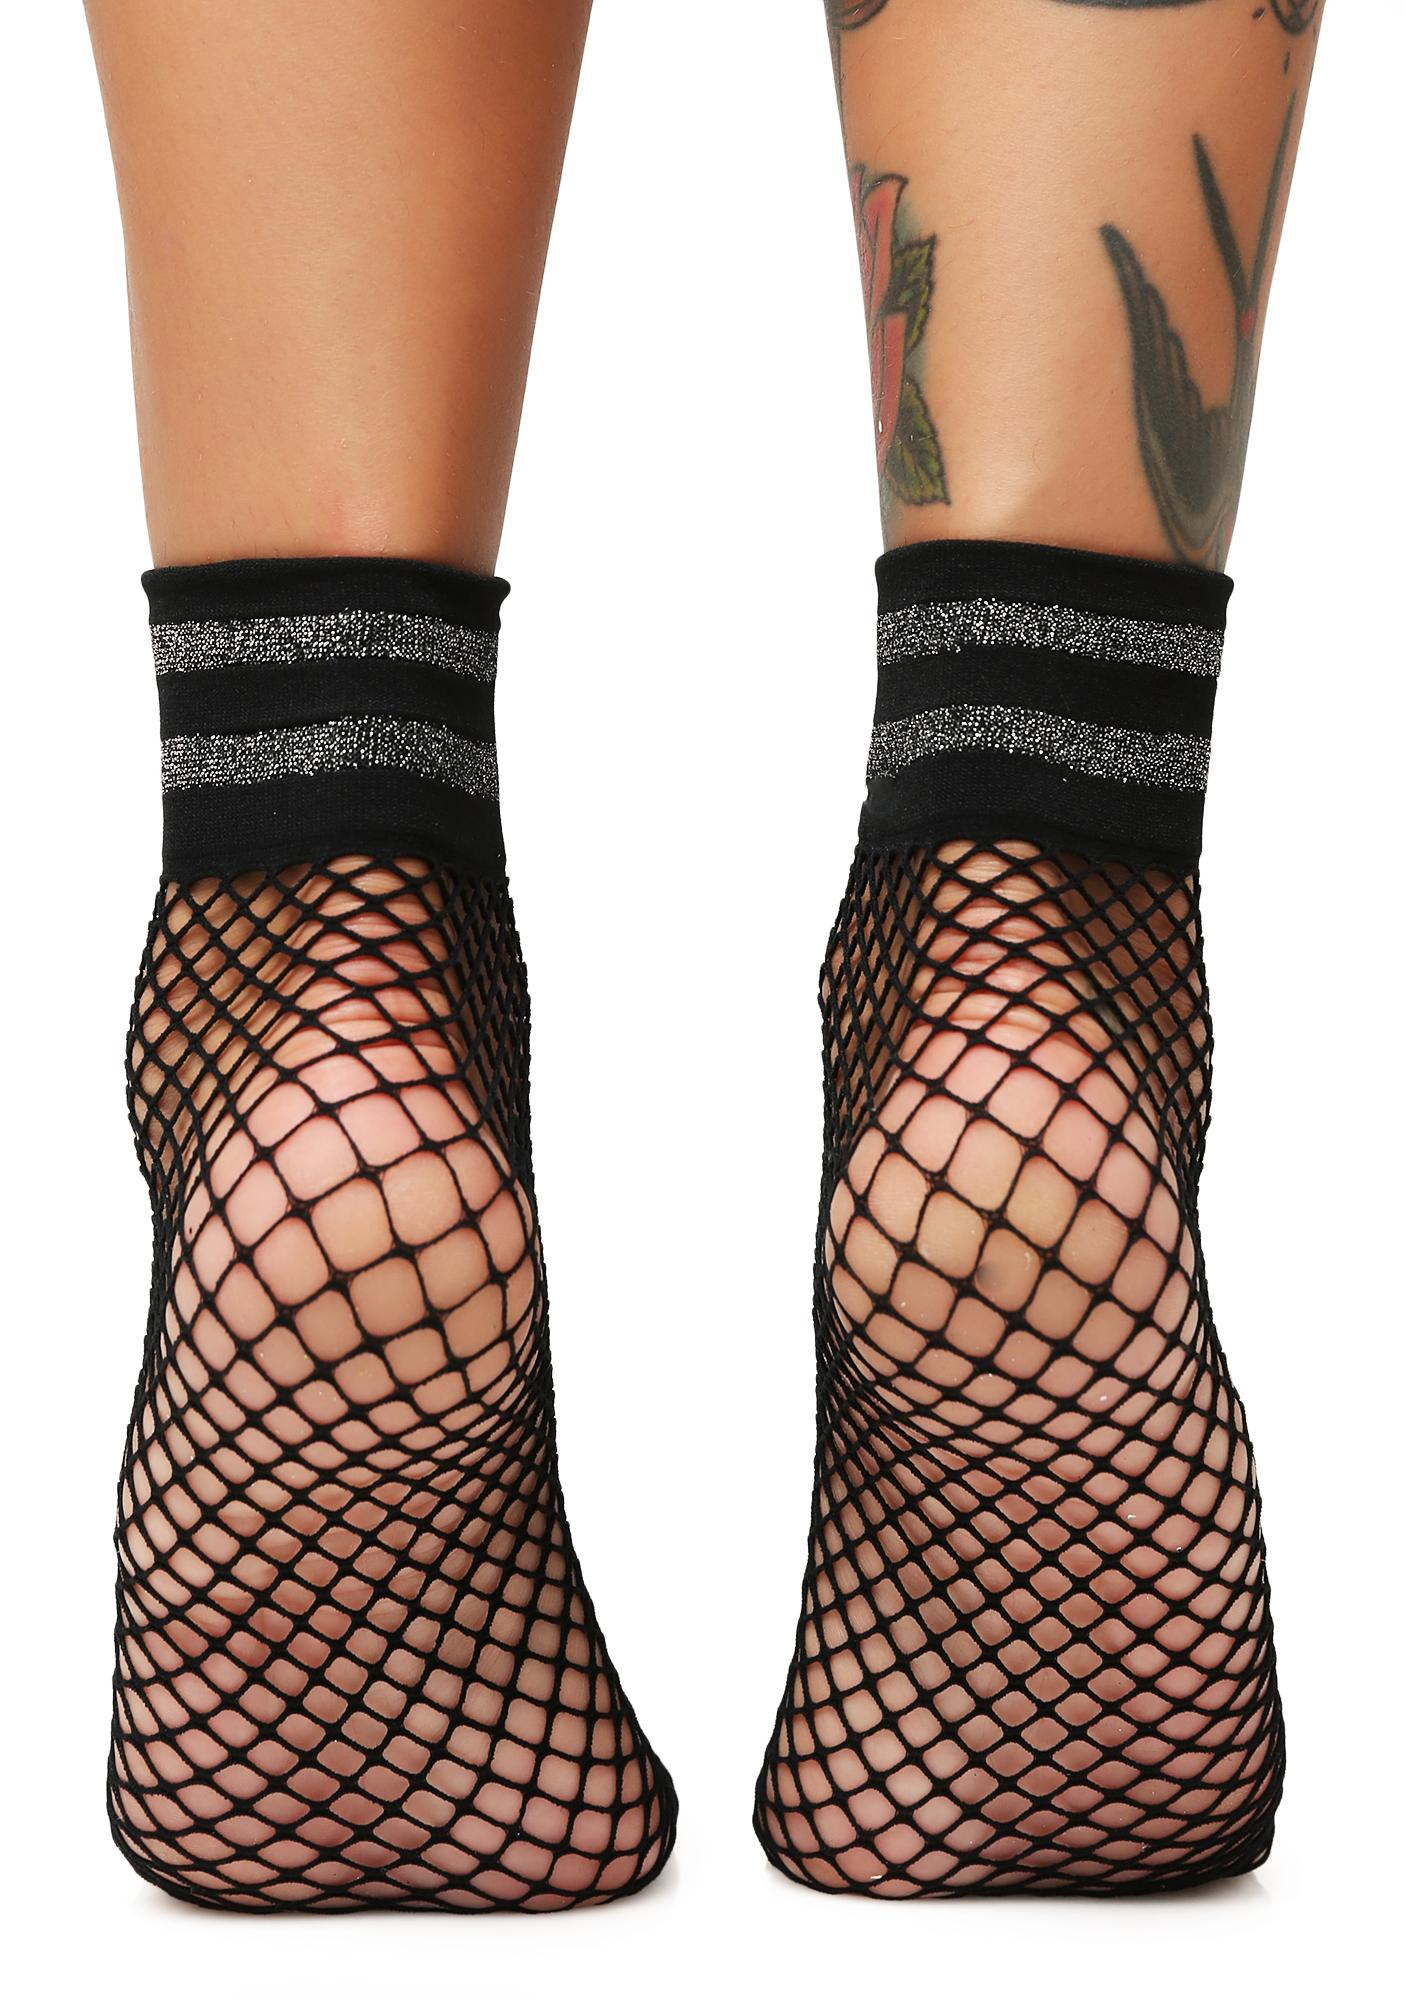 Sneak Around Fishnet Socks